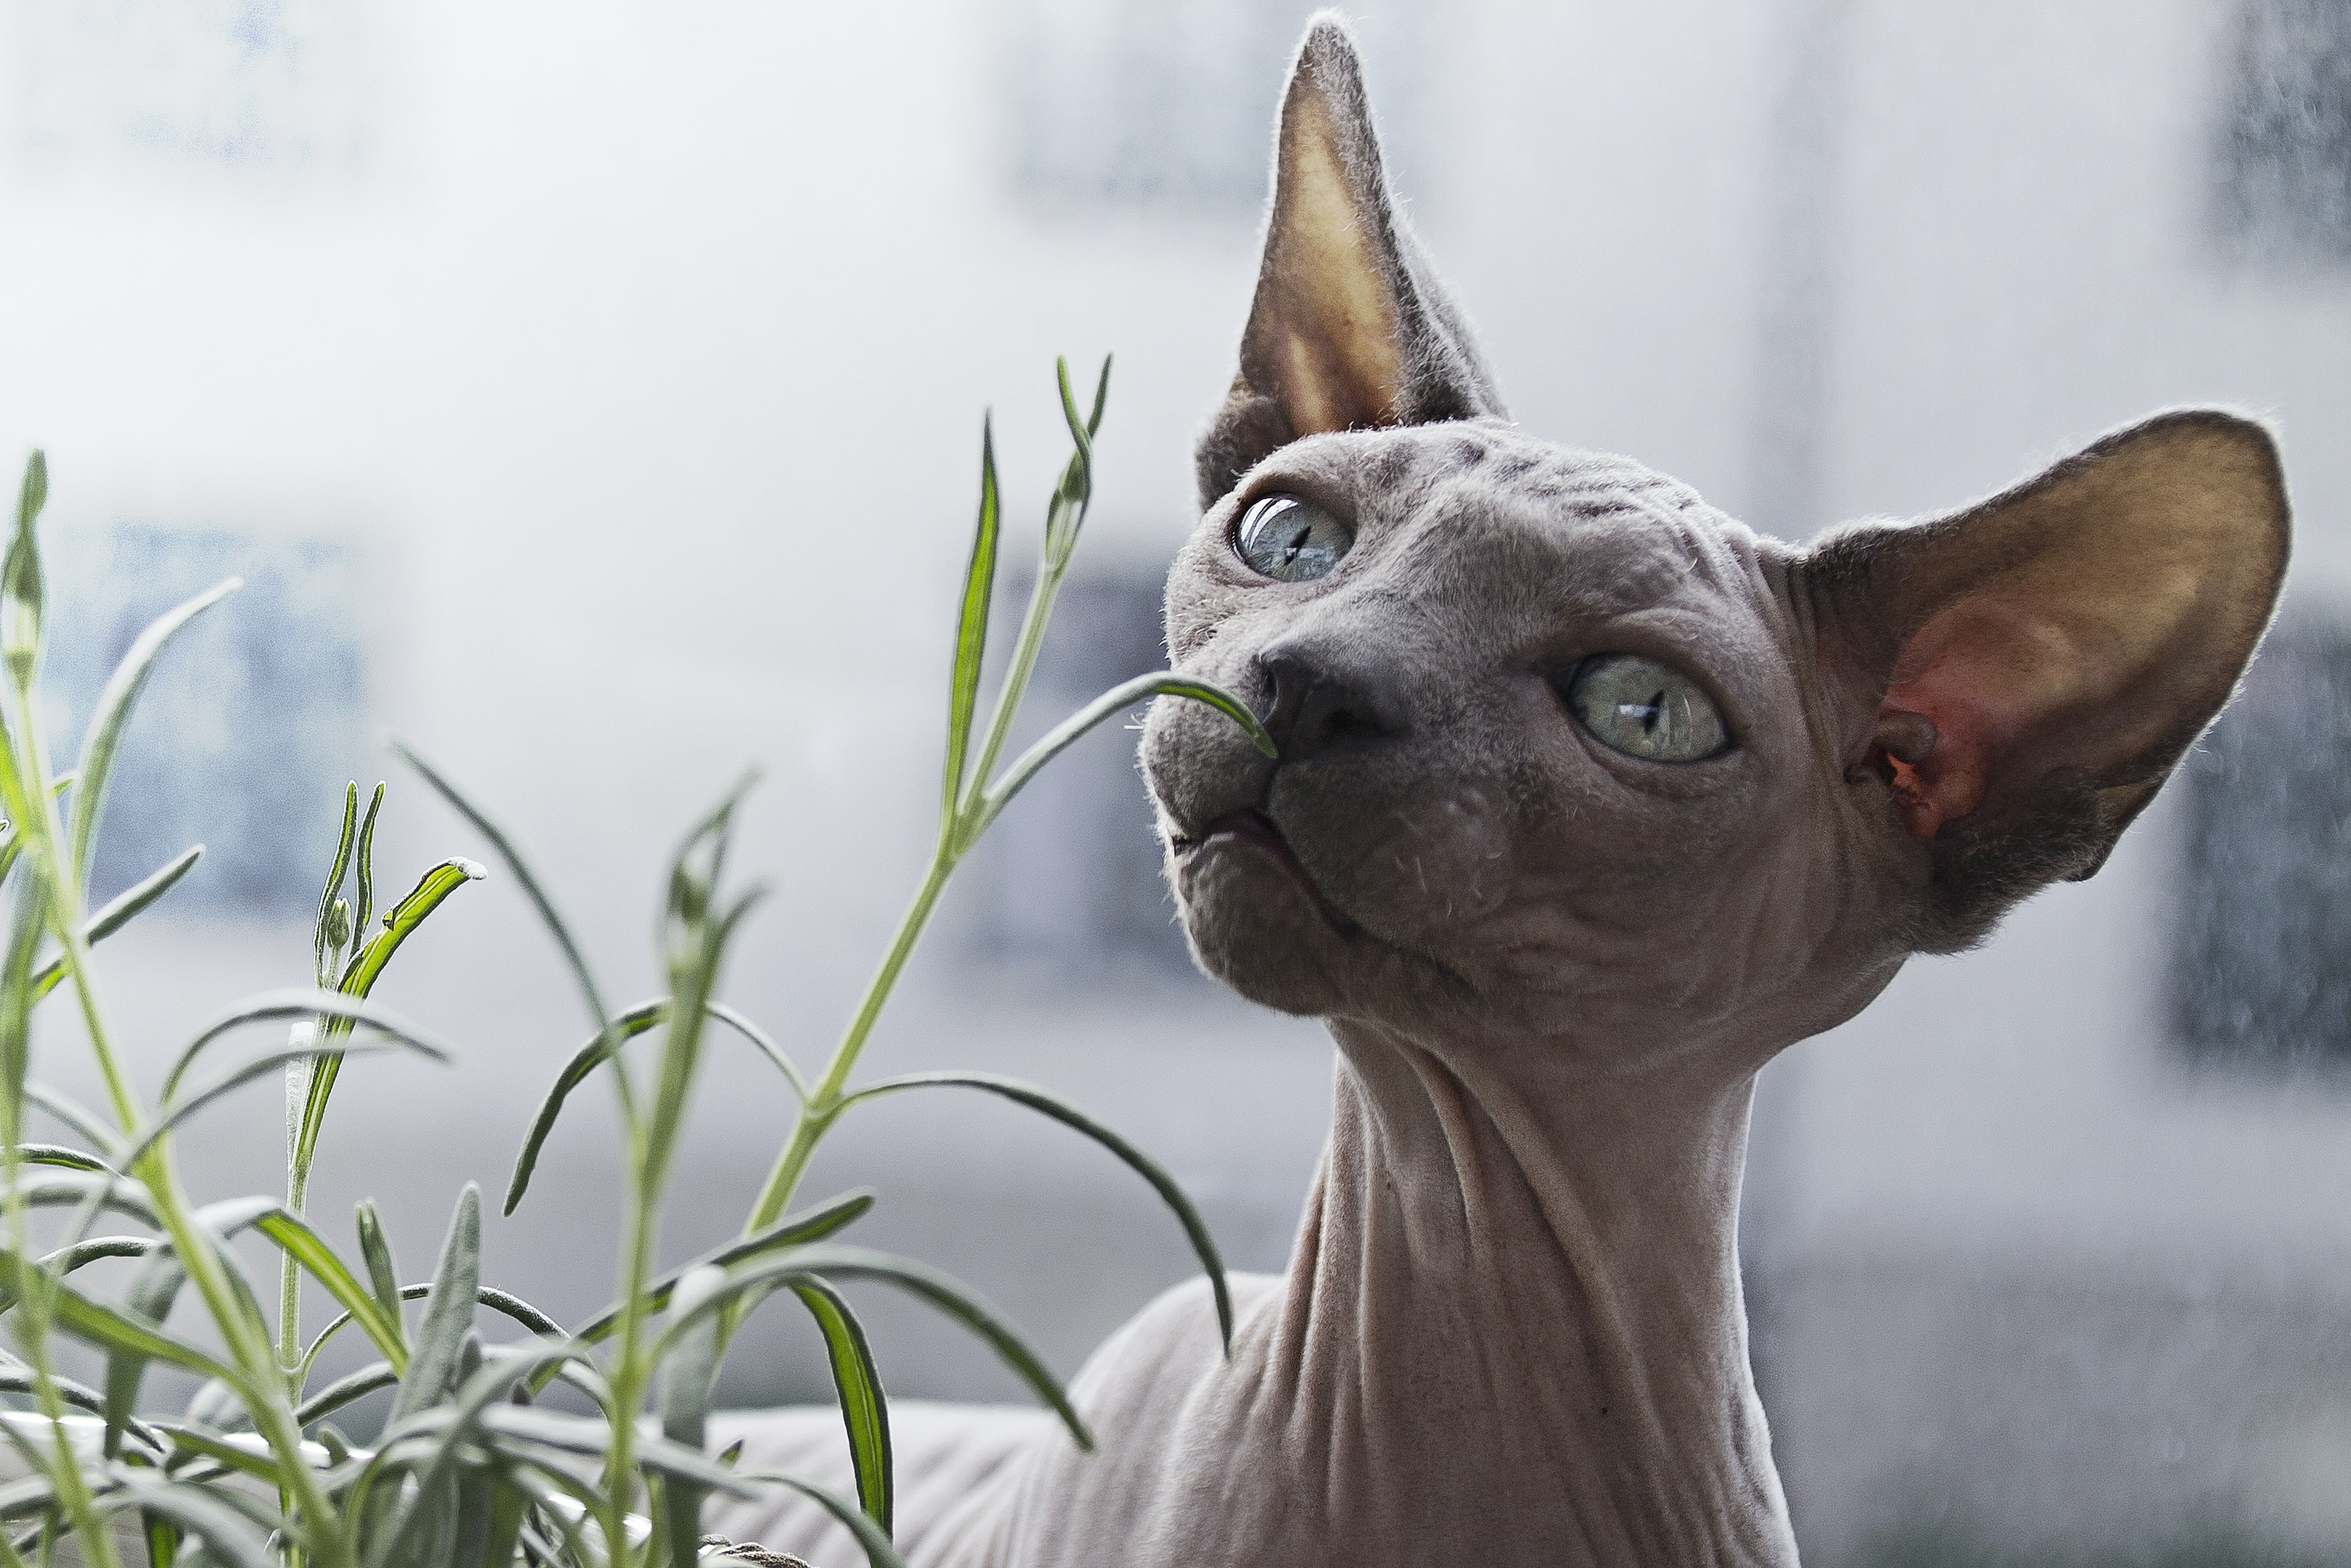 sphynx cat in front of plant